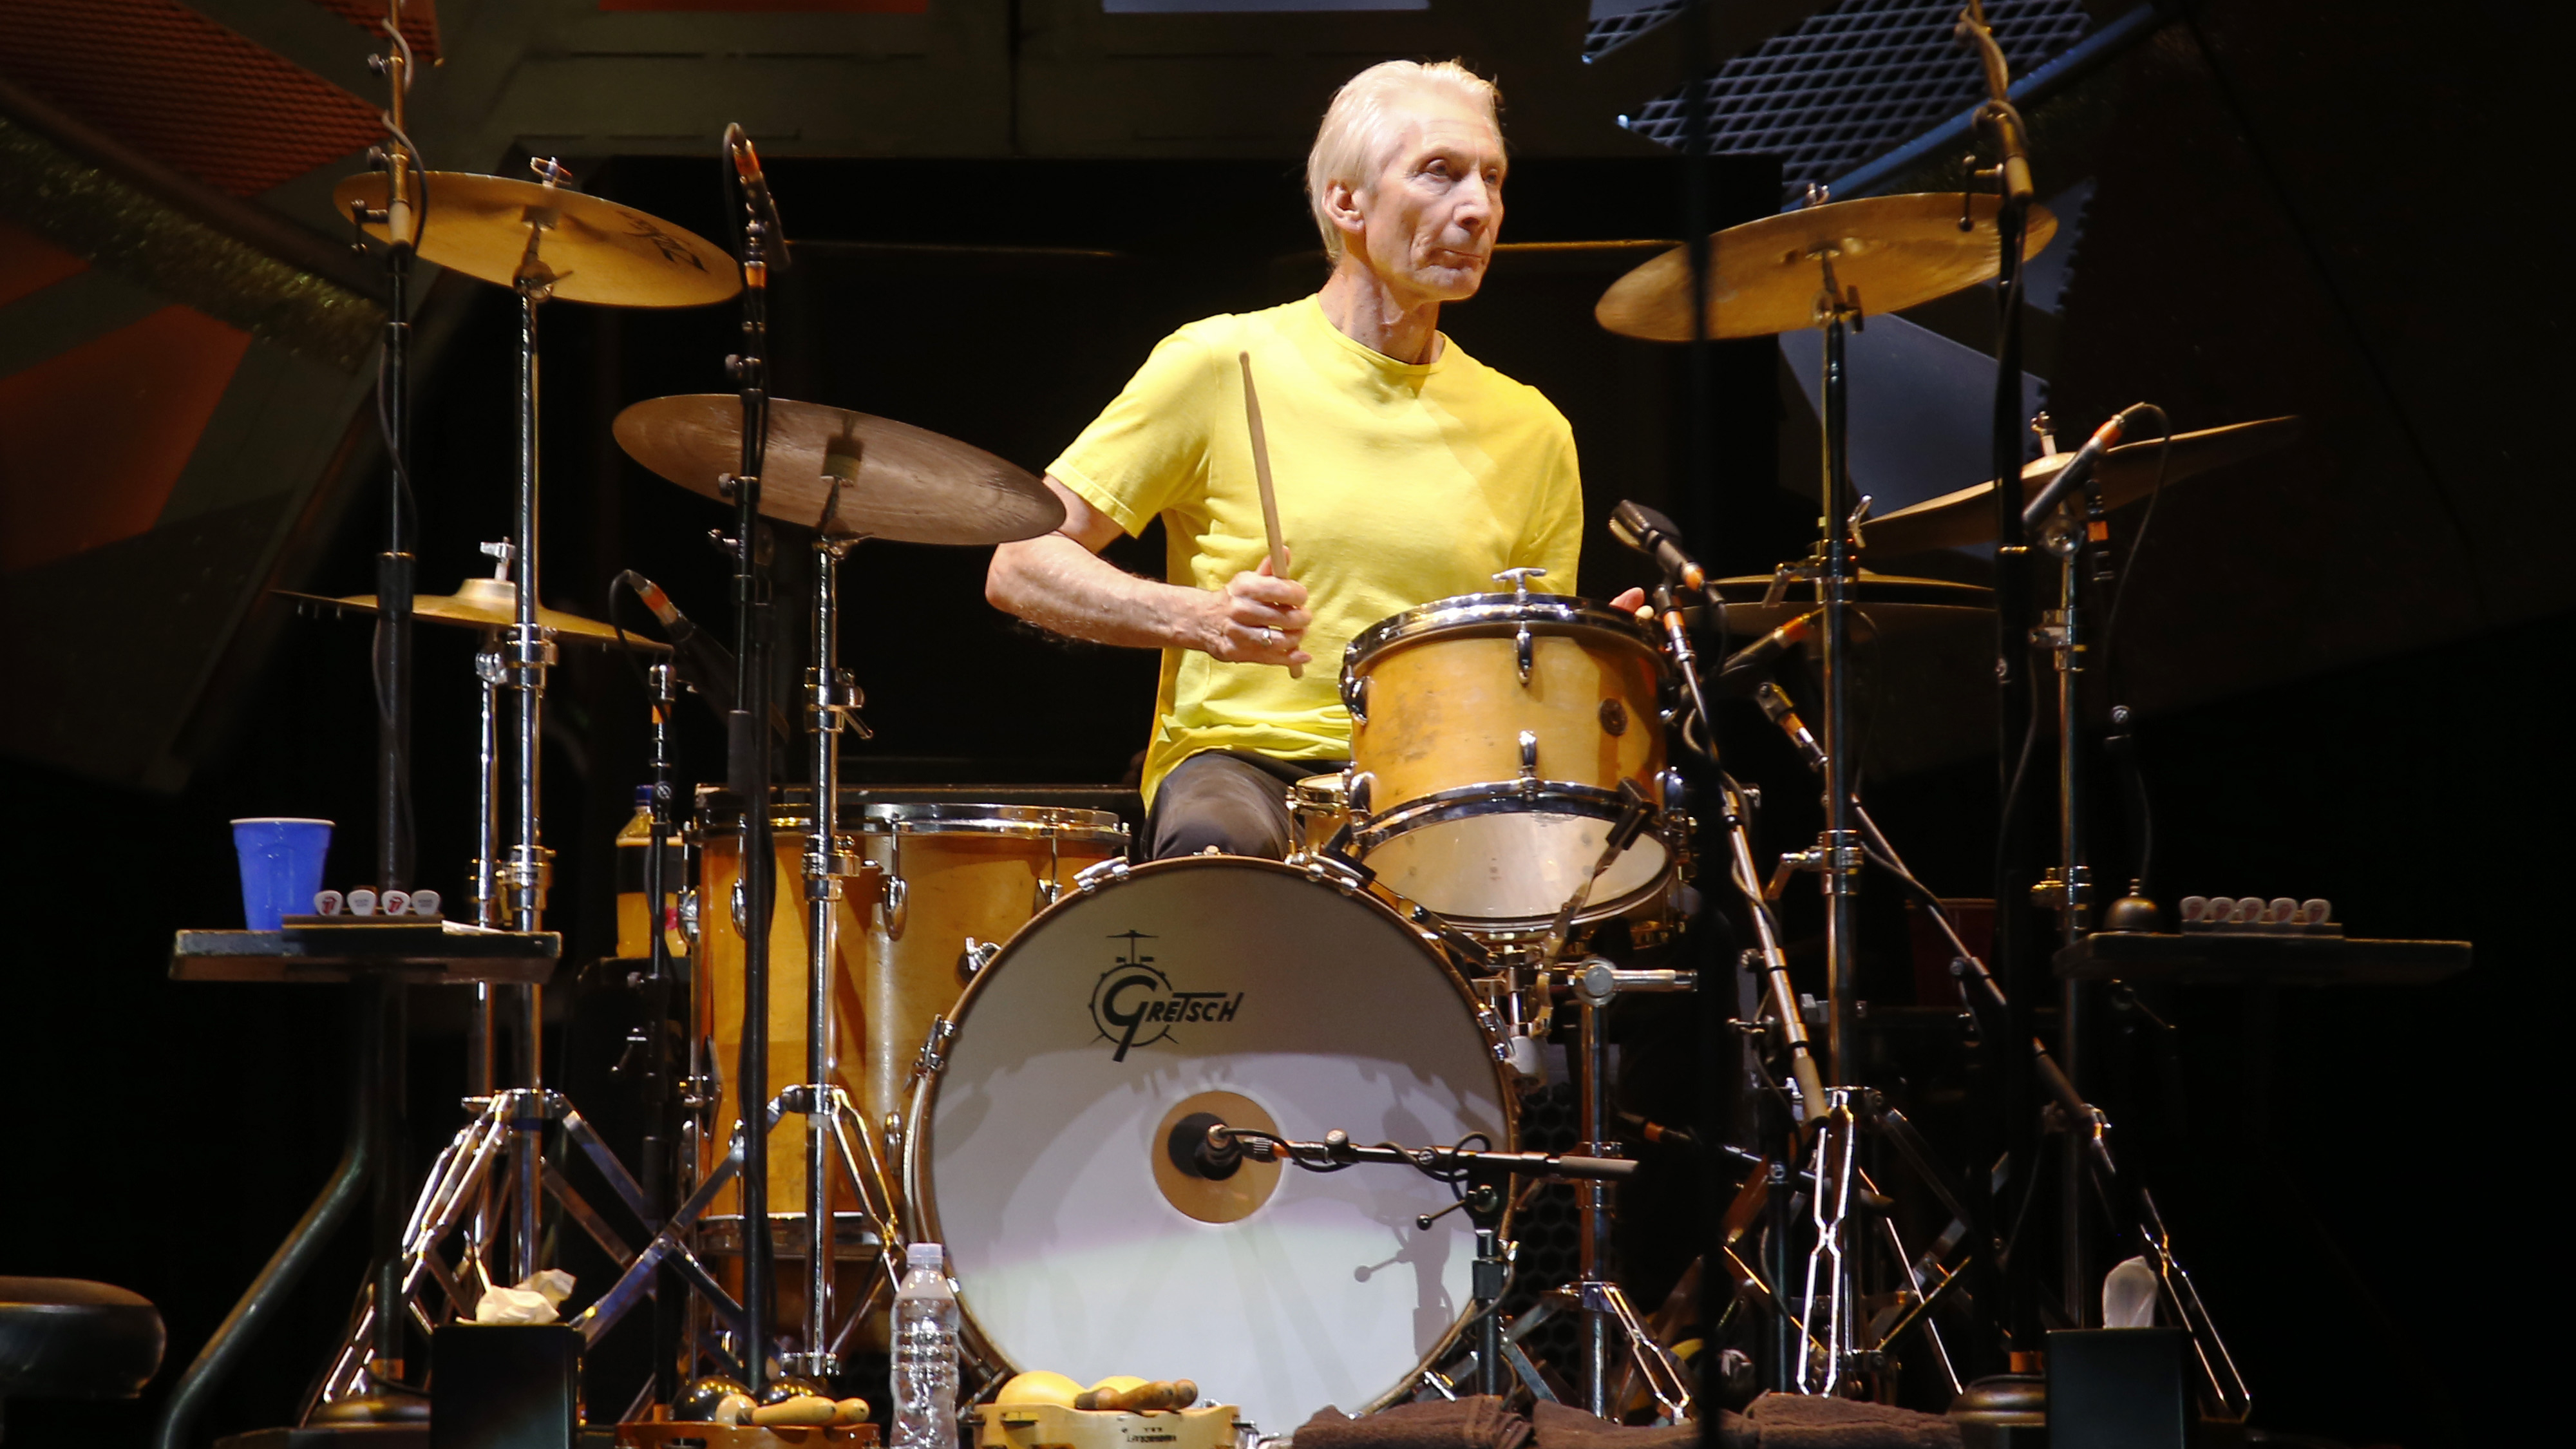 Charlie Watts performs with the Rolling Stones in 2015.